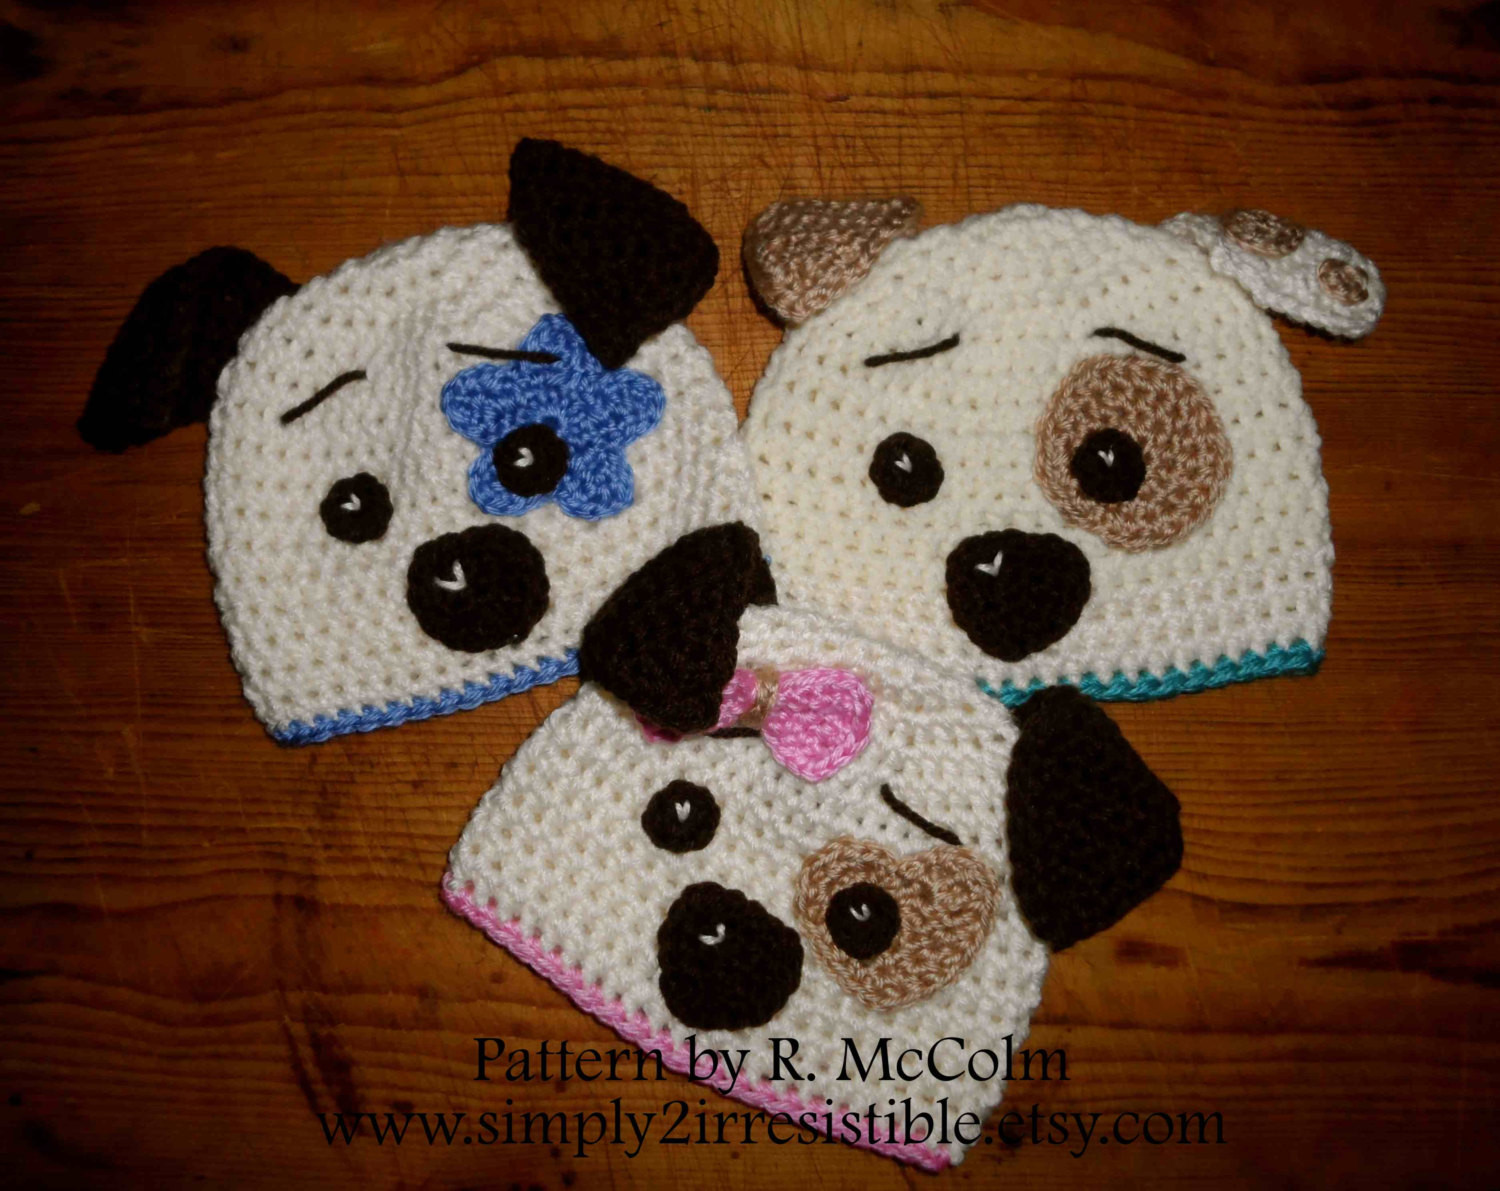 Hound Dog Hat Crochet Pattern 19 Beanie and Earflap